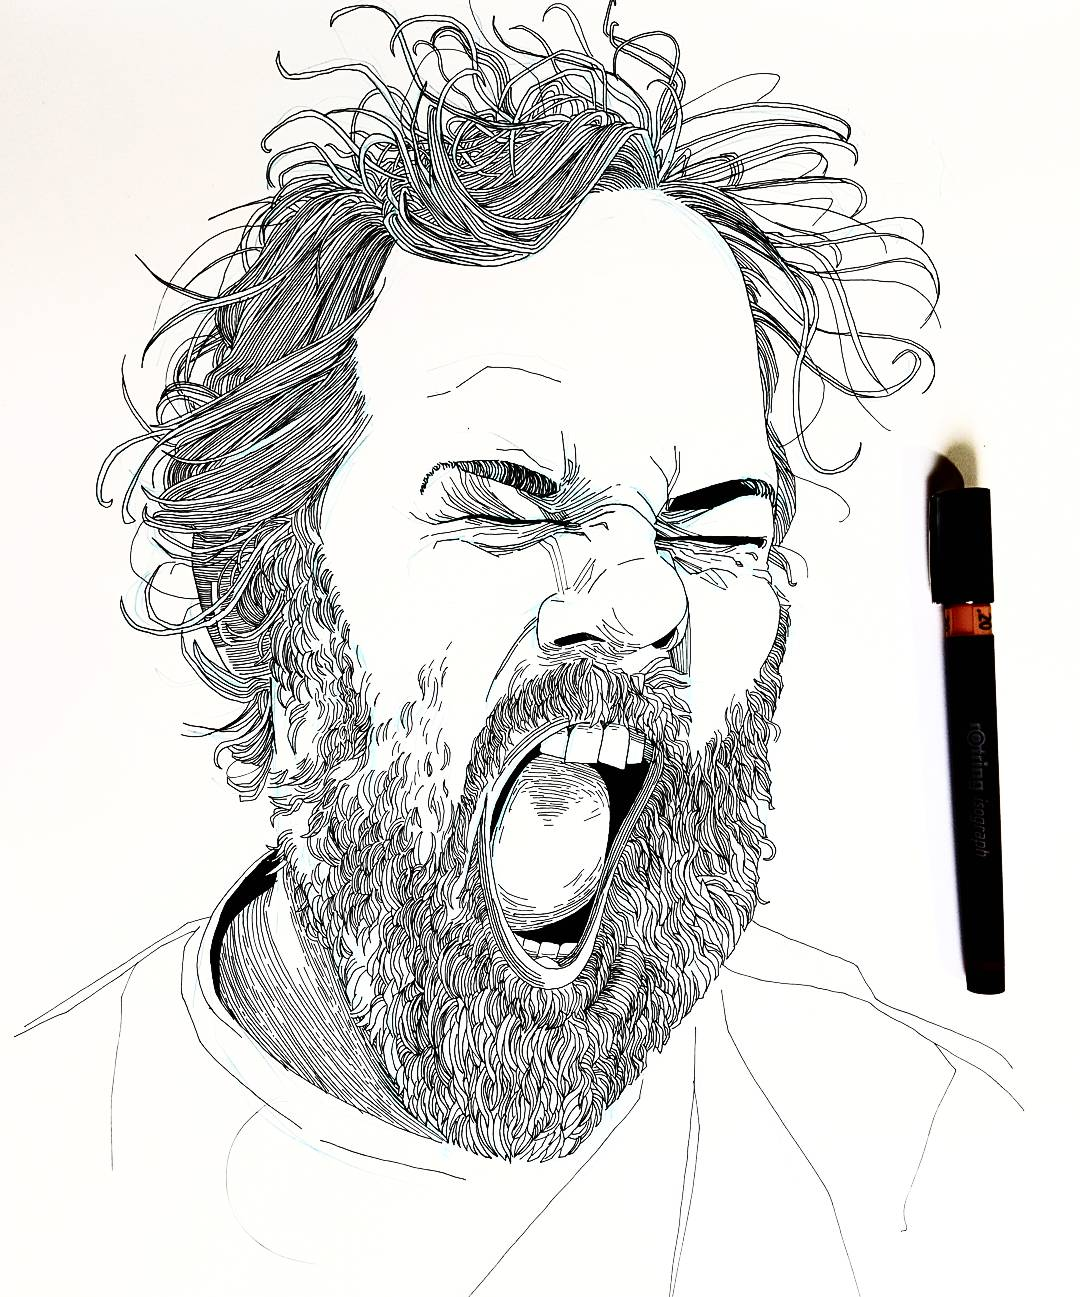 Dan Harmon portrait illustration